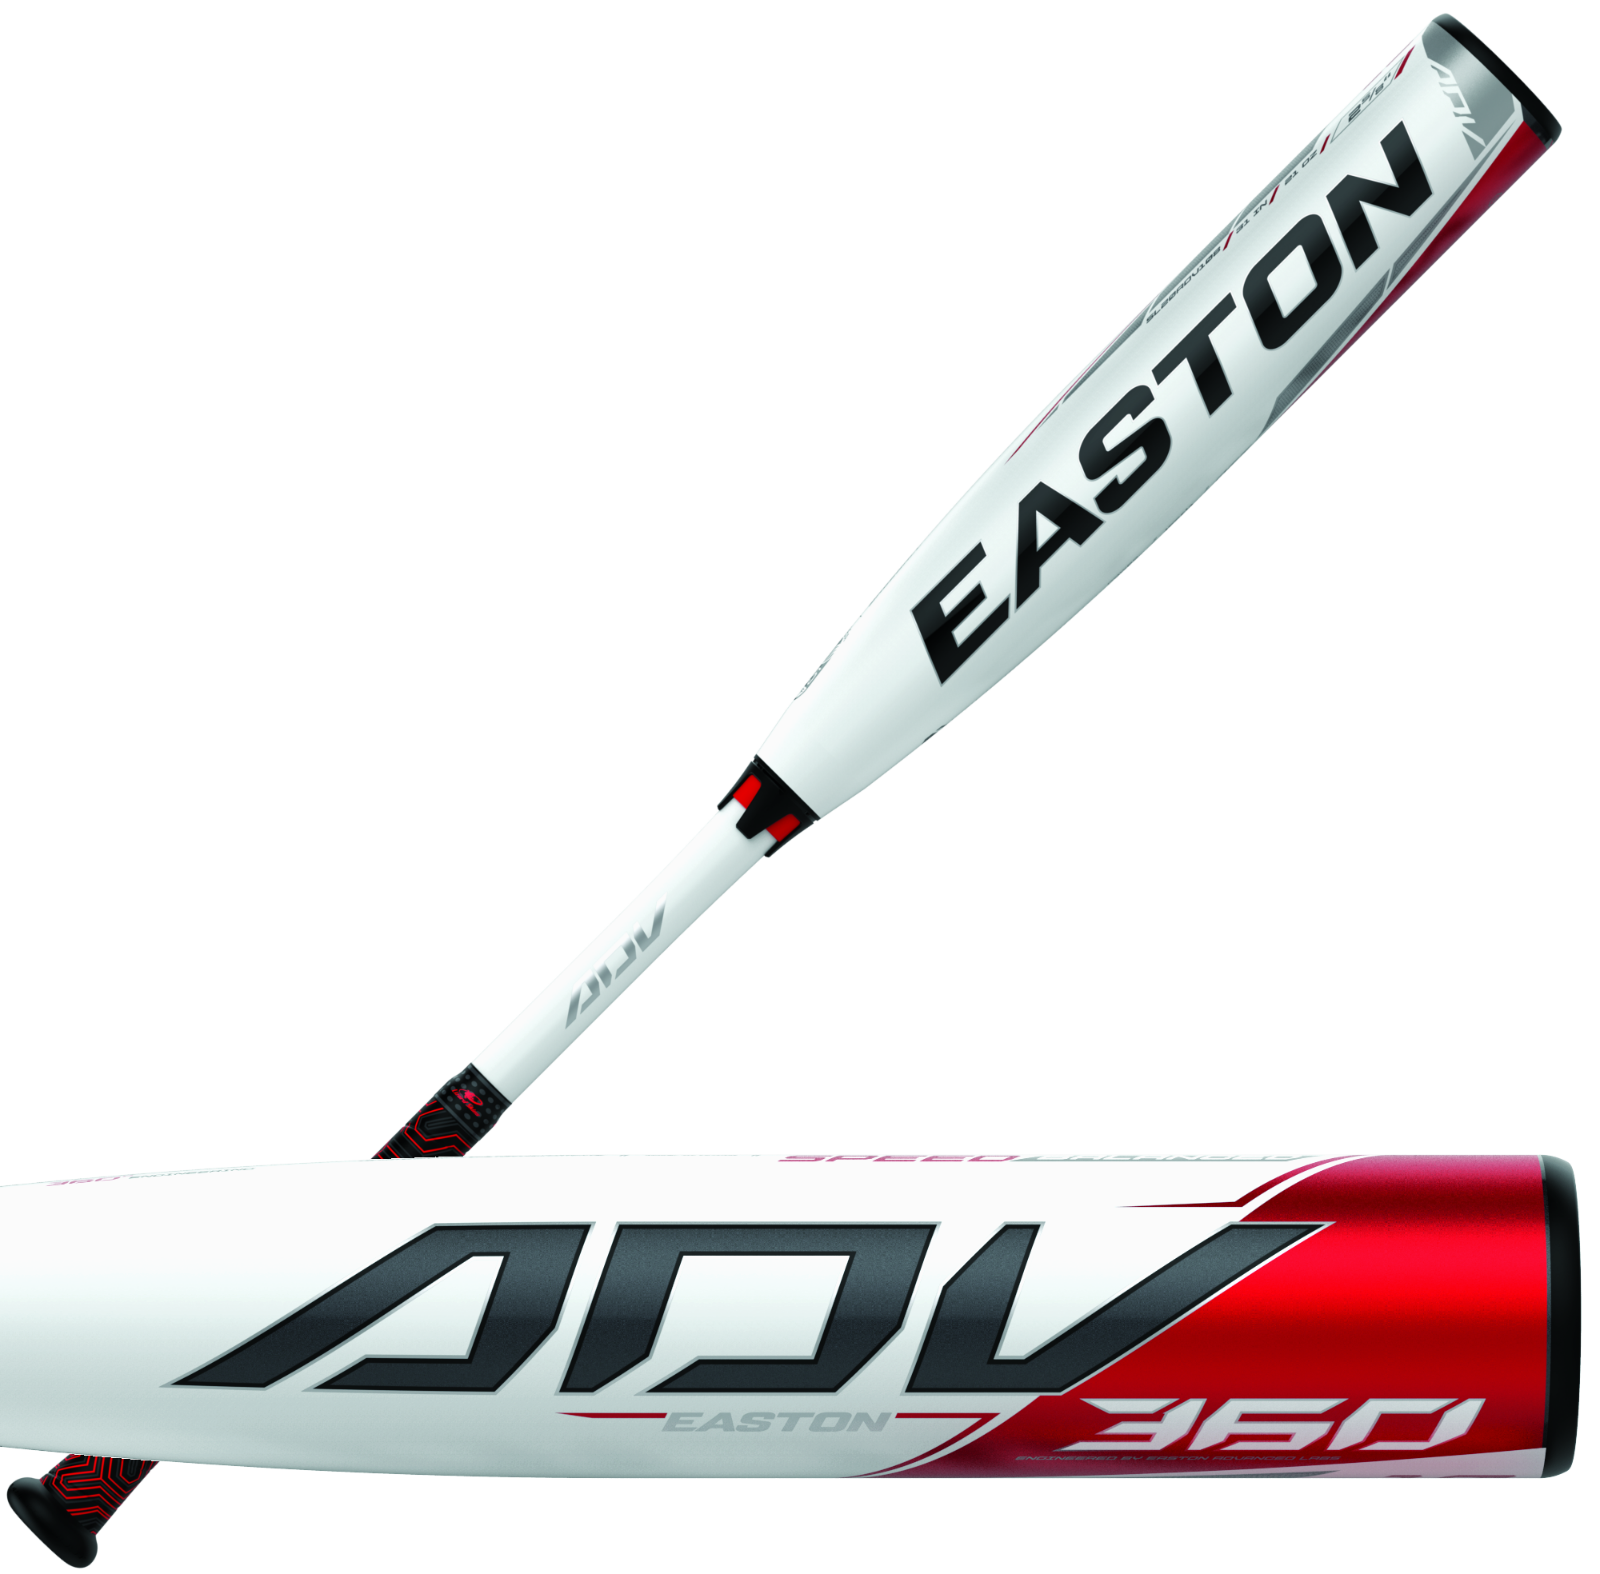 2020 Easton ADV 360 -8 USSSA Baseball Bat SL20ADV8 2 3/4